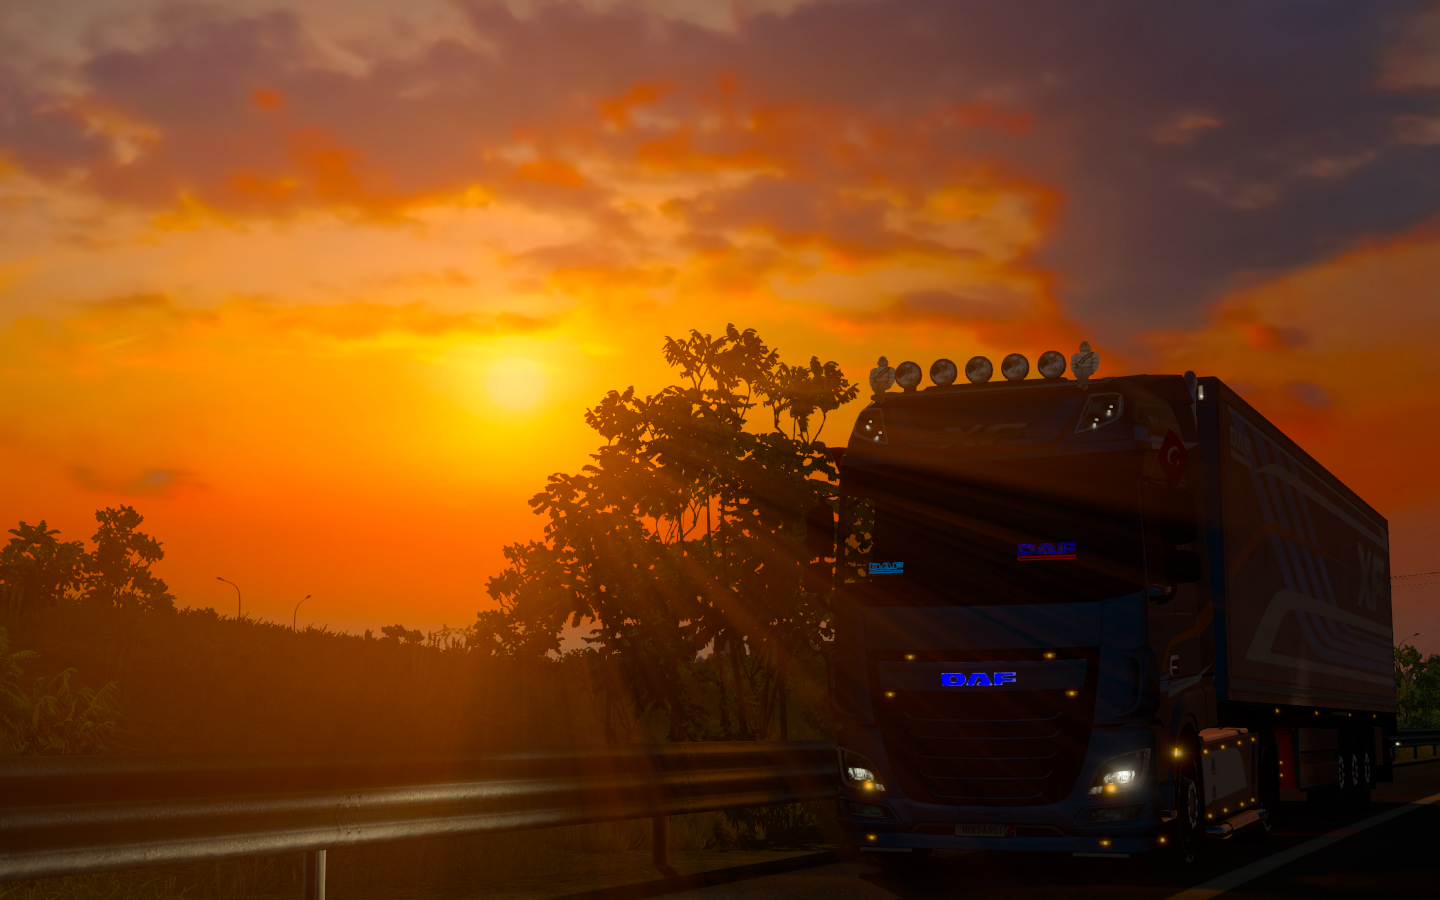 ets2_20190625_012622_00.png